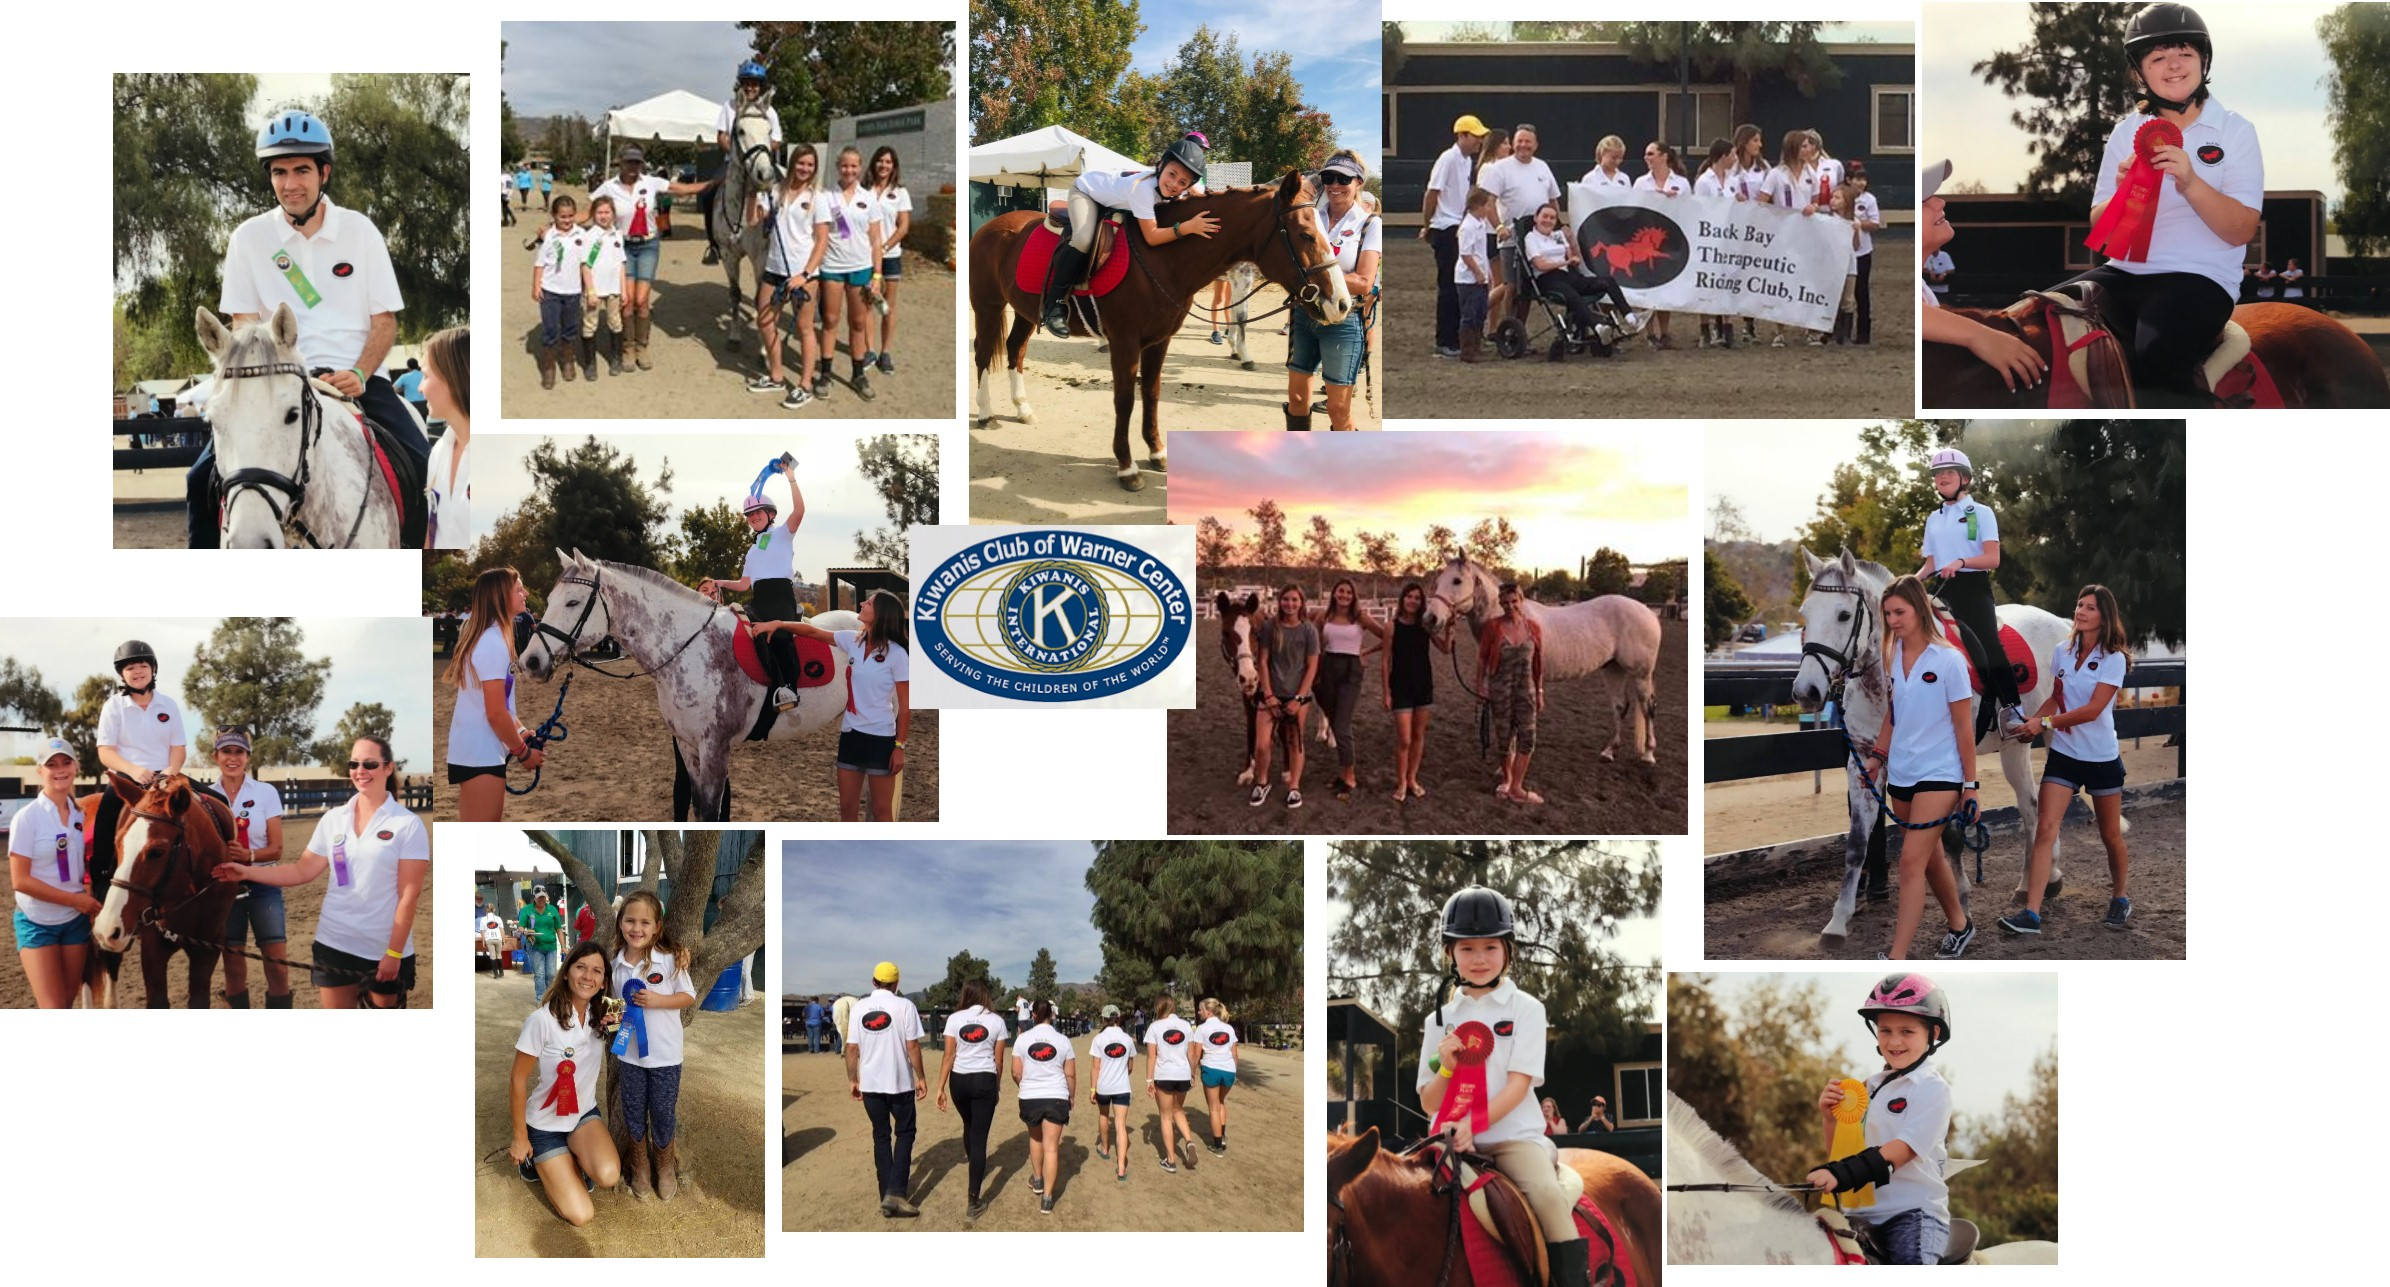 Kiwanis Equestrian Competition for Special AthletesNovember 4, 2018 - Our students did amazing this year again at the KECSA, horseshow organized by the KIWANIS in LA! We took Boomer and for the first time Tenney, the horses were amazing! Thanks to all the volunteers for your help and congratulations to our 6 students who competed and won first and second places !!!